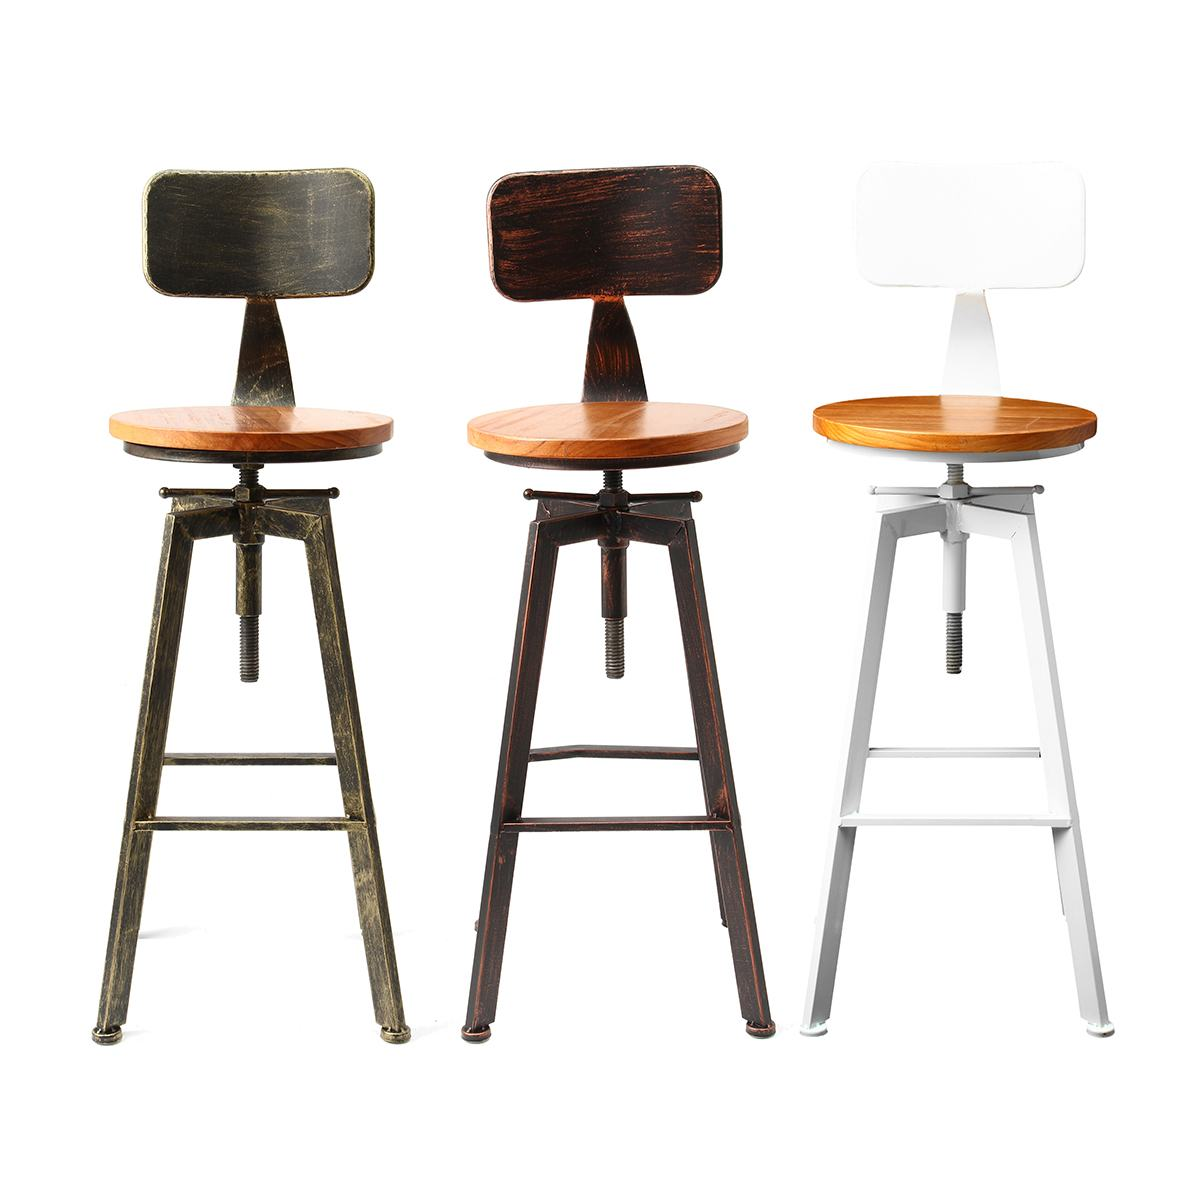 Retro Industrial Bar Chair Stool Adjustable Wood Iron Stool 360 Degree Rotating Counter Lift High Chair Home Bar Decor 3 Colors(China)